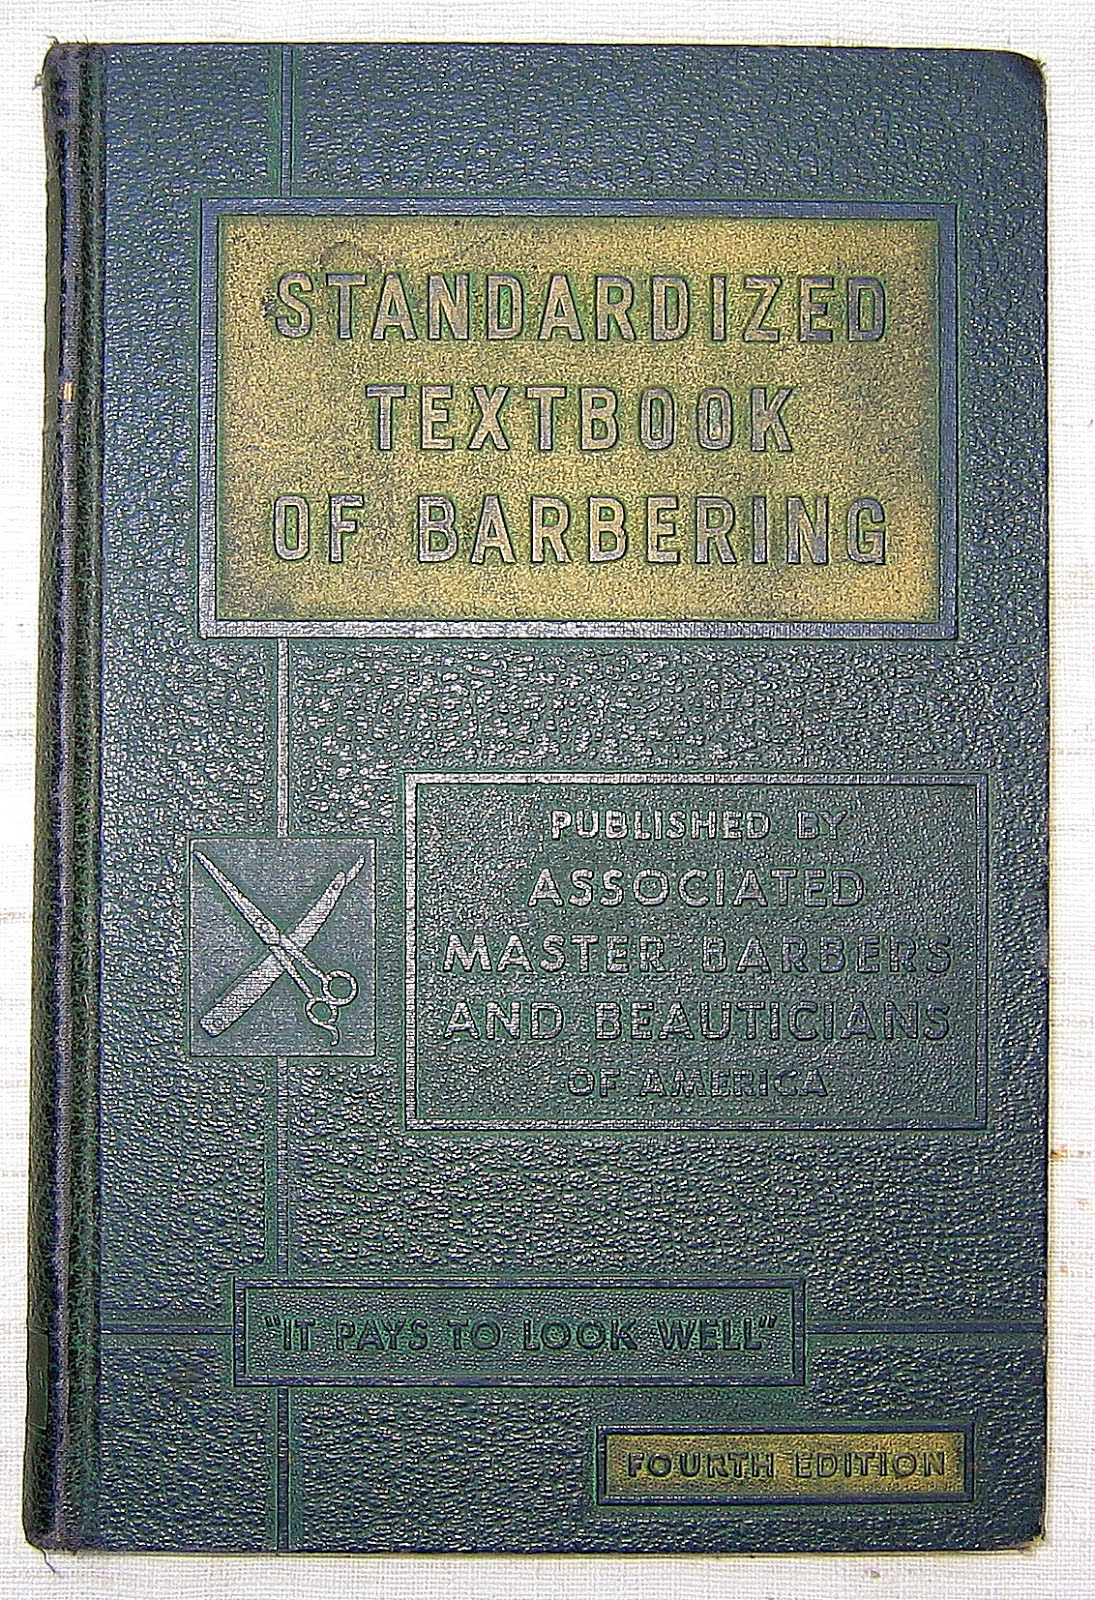 Standardized+textbook+of+barbering+1950+carti+mestesuguri